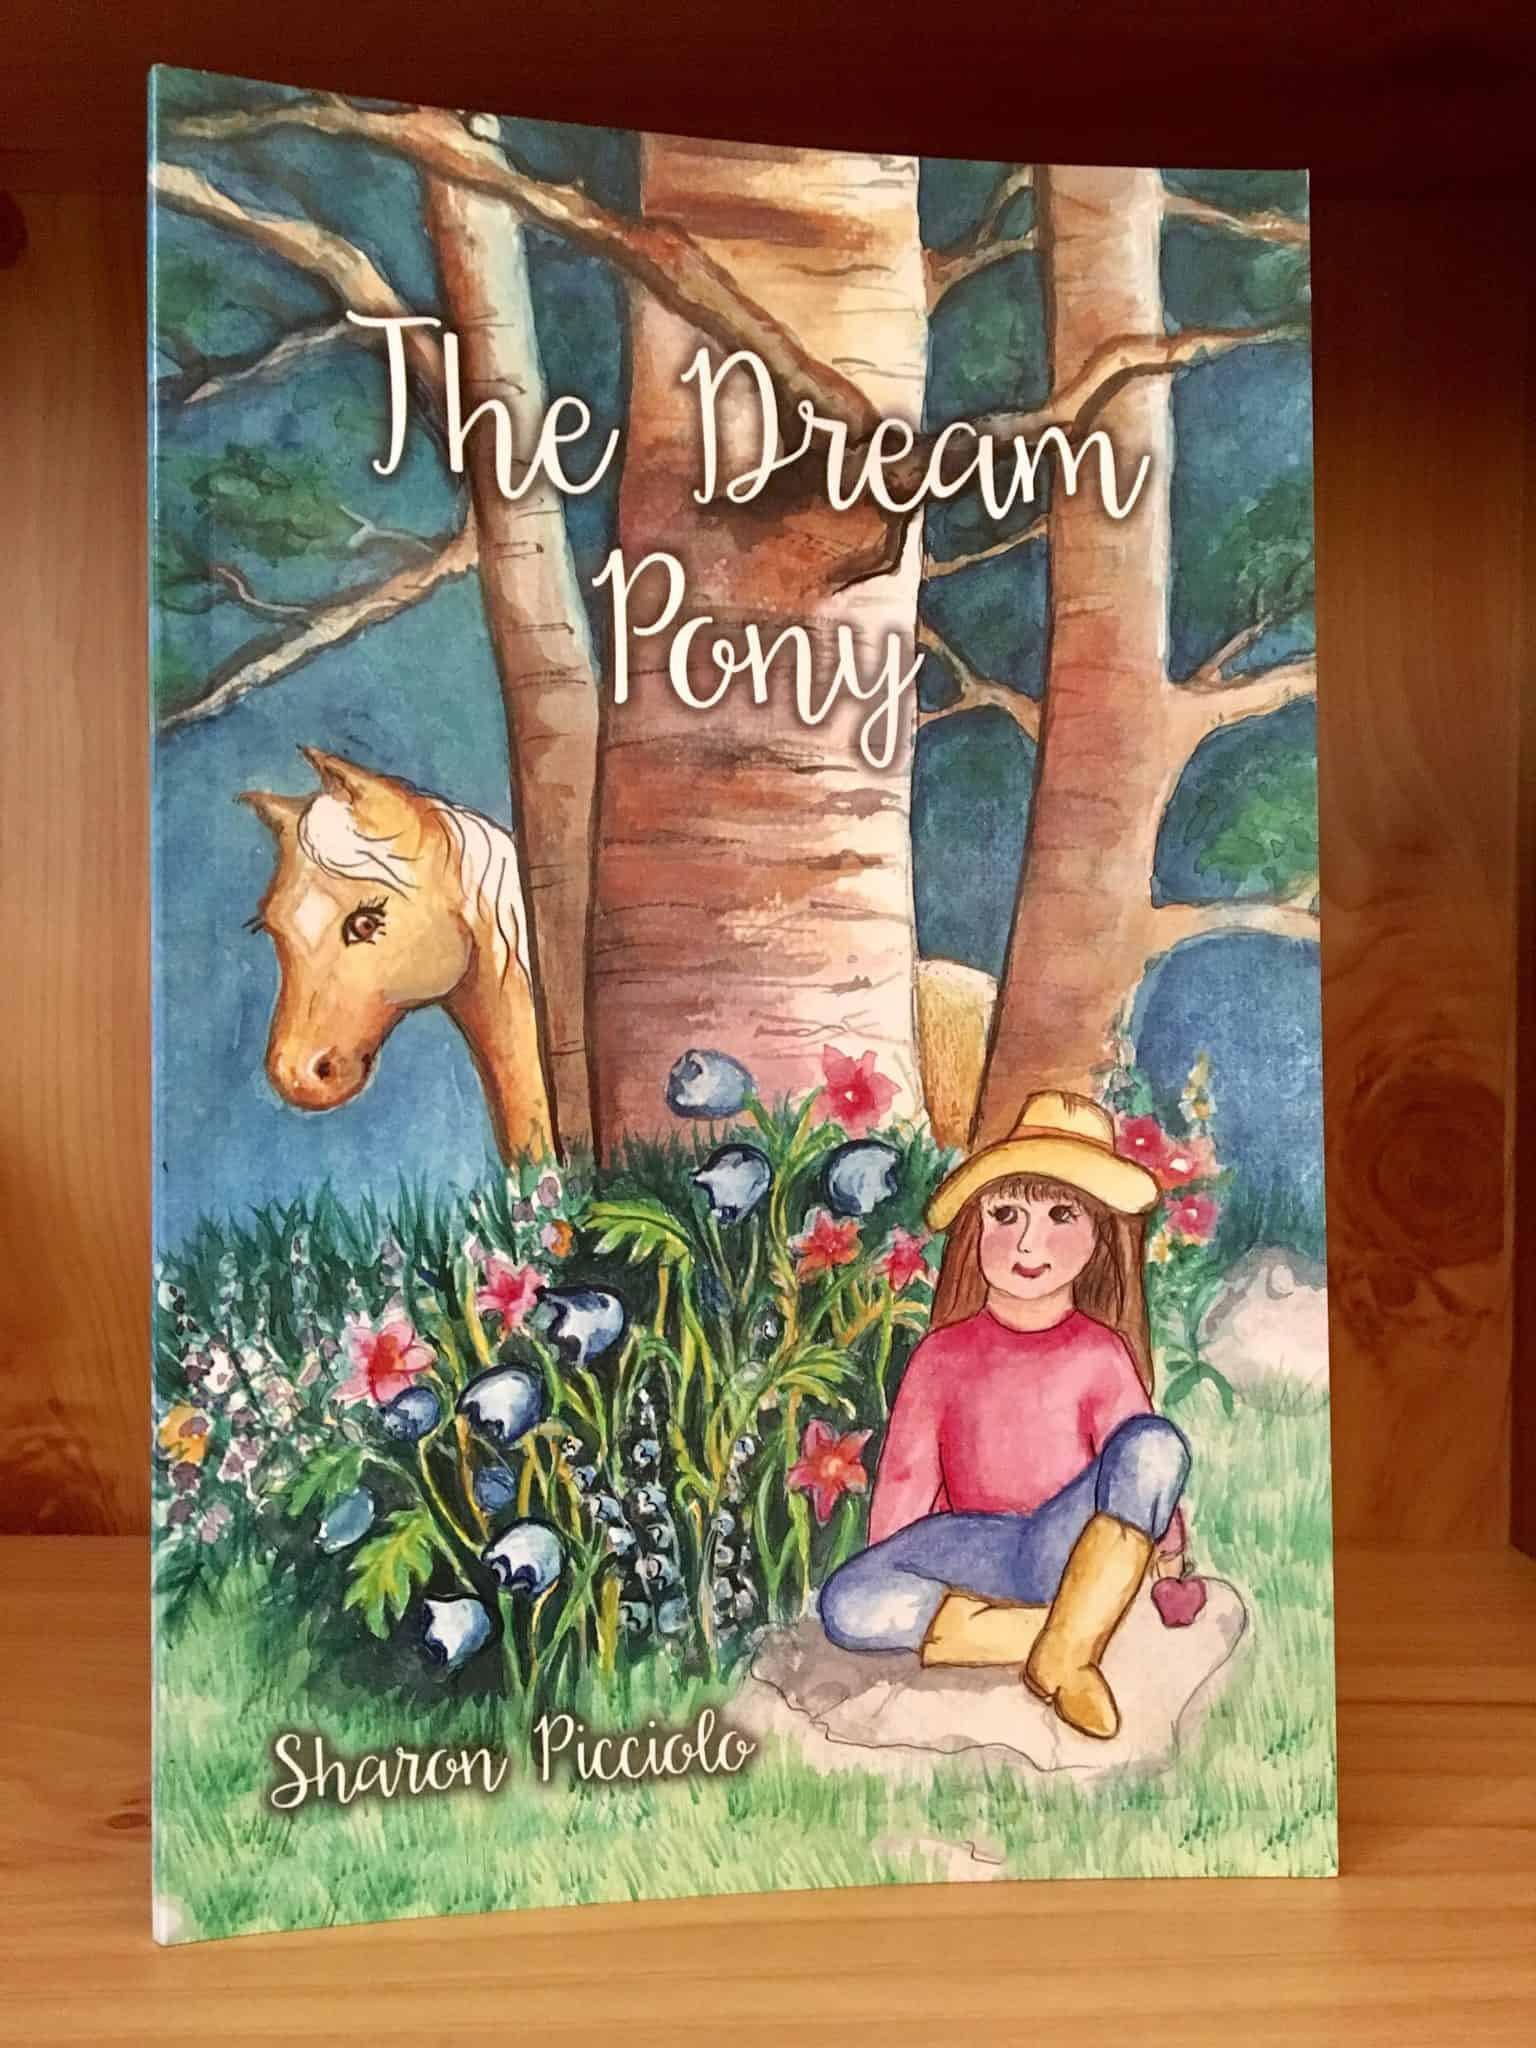 The Dream Pony by Sharon Picciolo